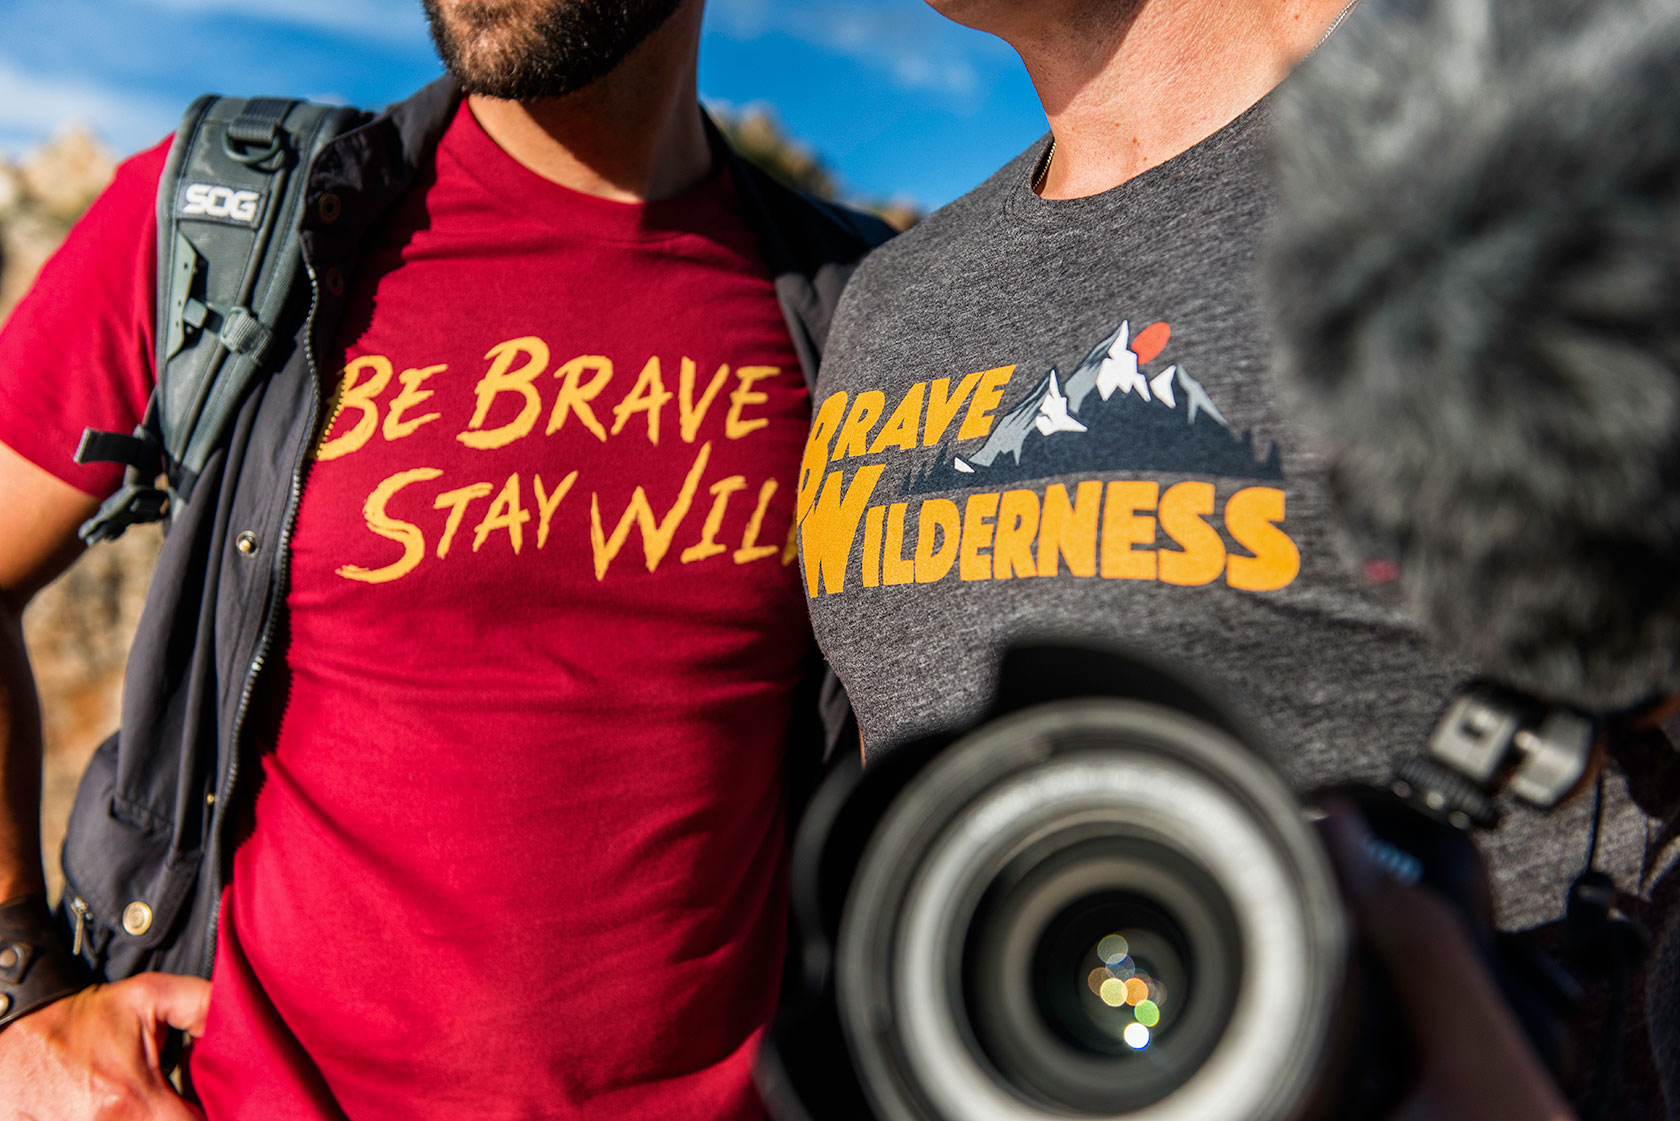 austin-trigg-brave-wilderness-utah-shirt-products-lifestyle.jpg